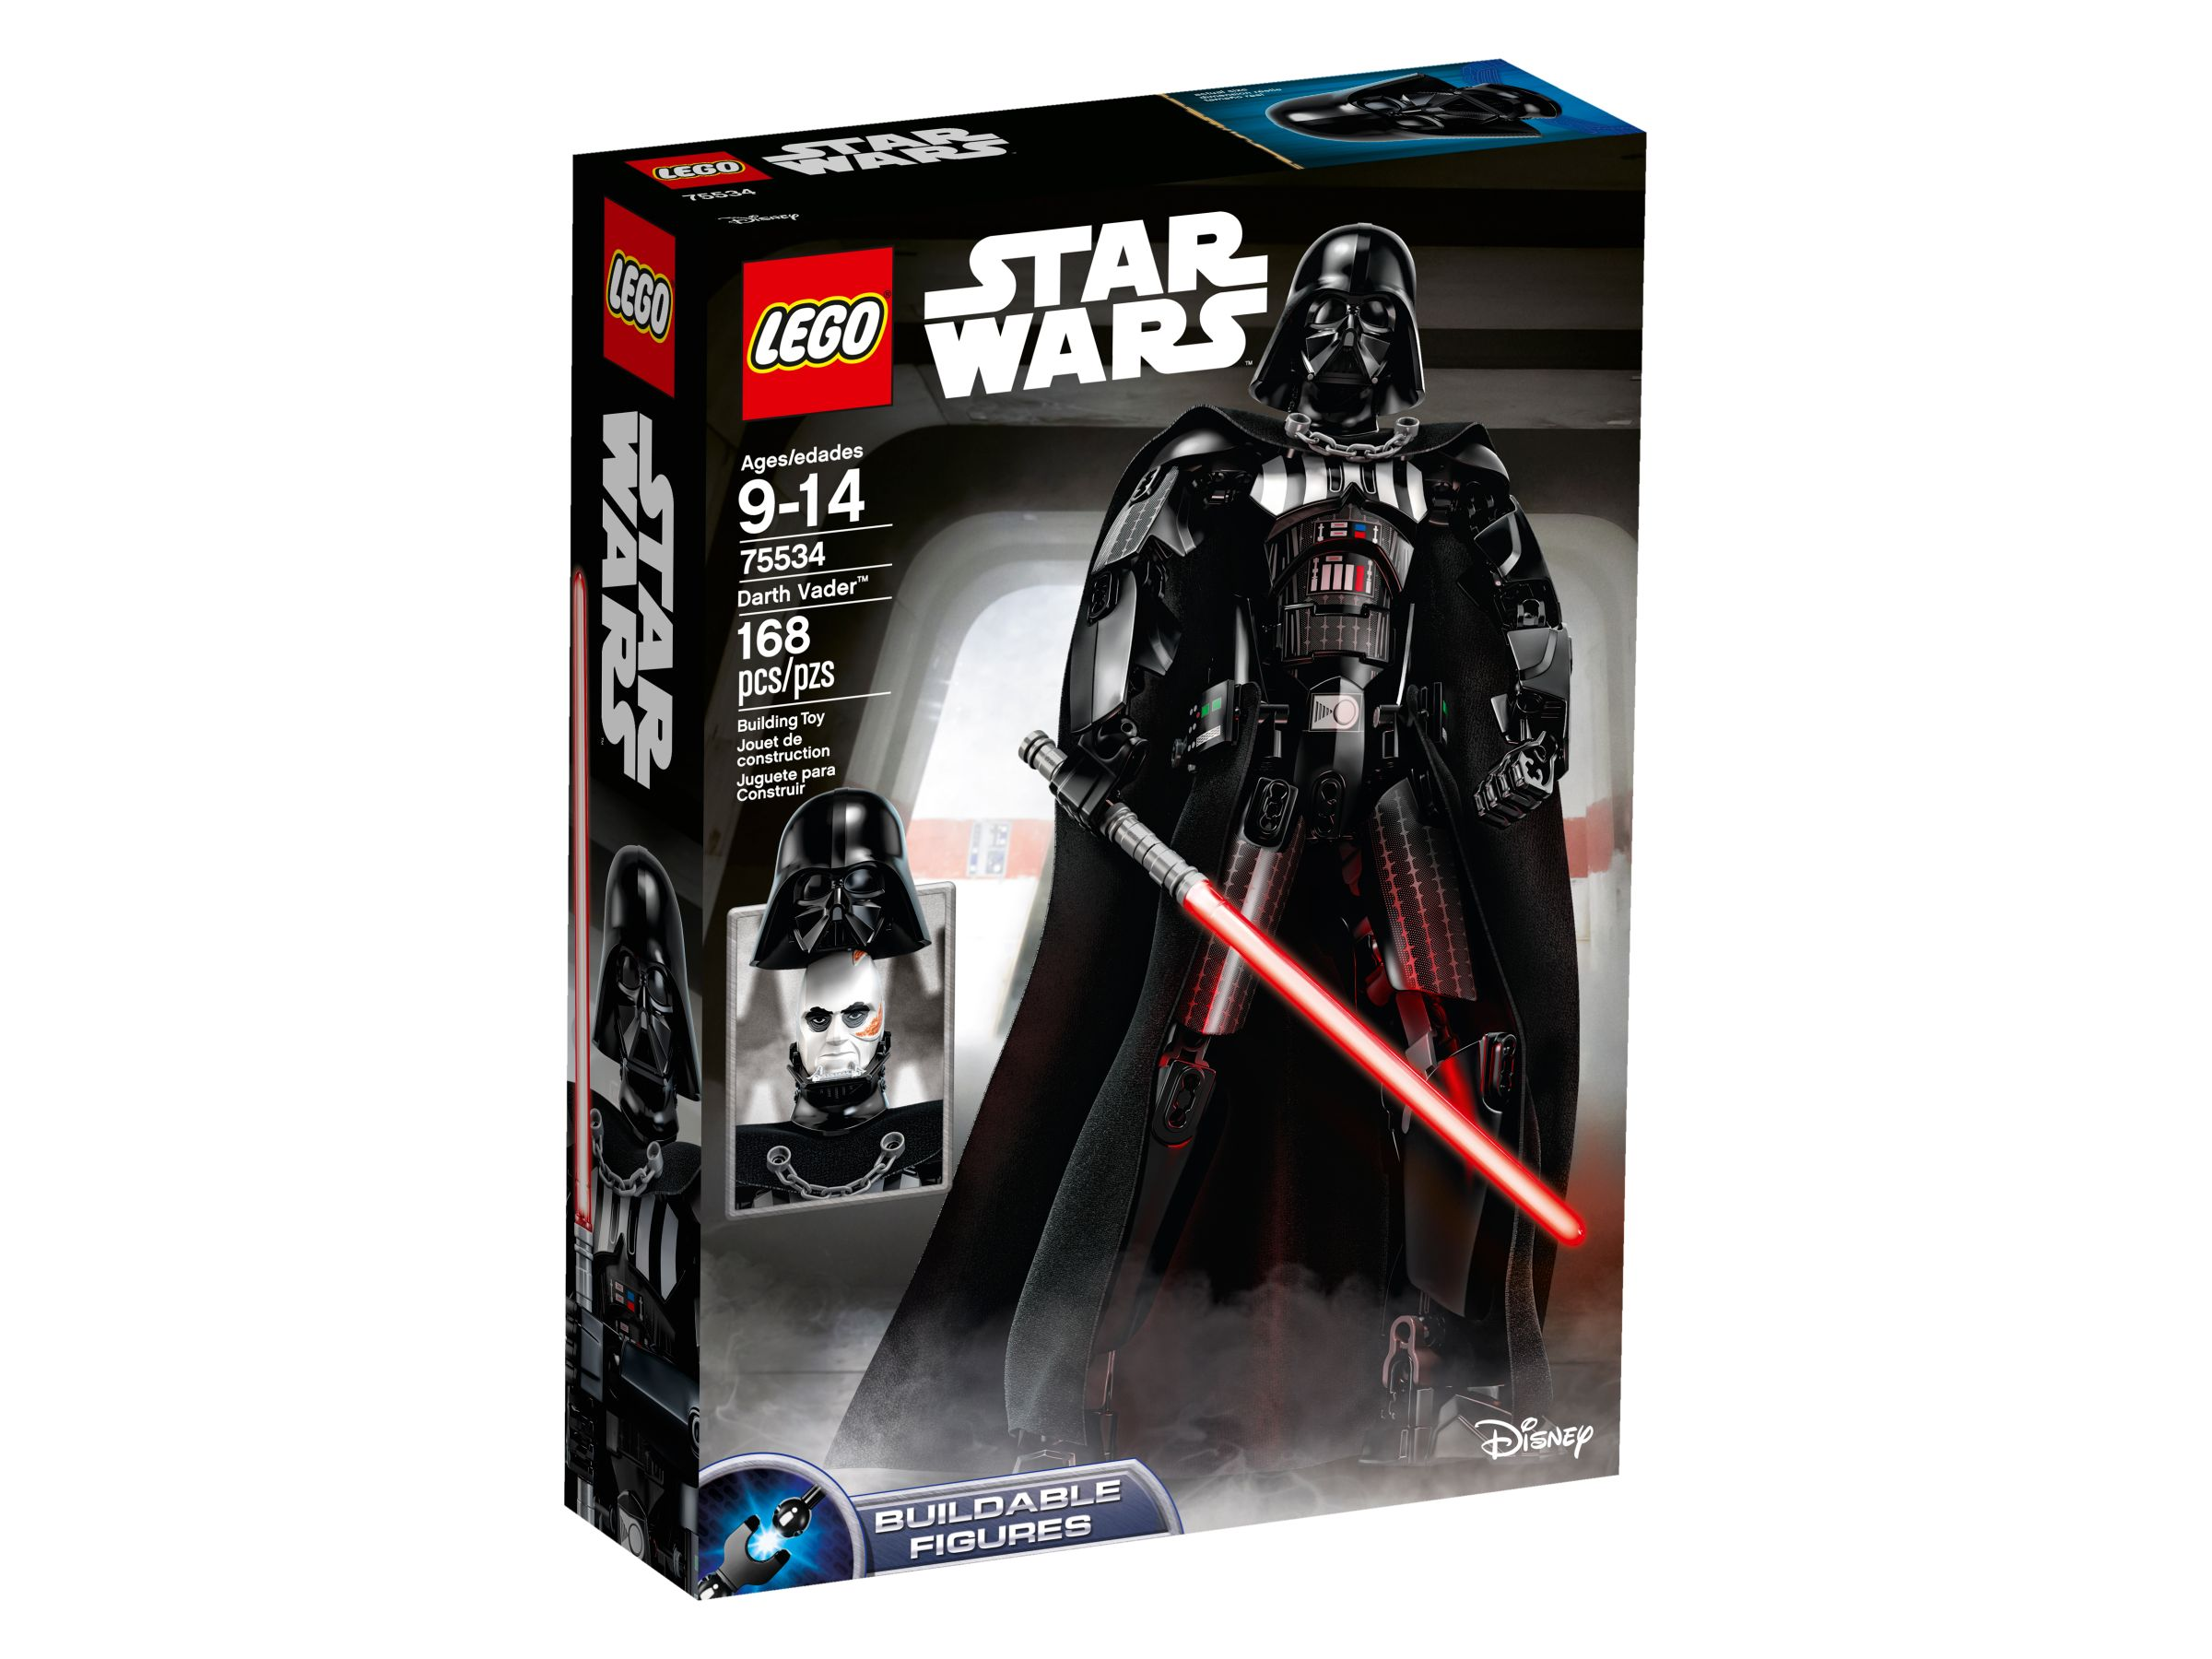 LEGO Star Wars Buildable Figures 75534 Darth Vader LEGO_75534_alt1.jpg